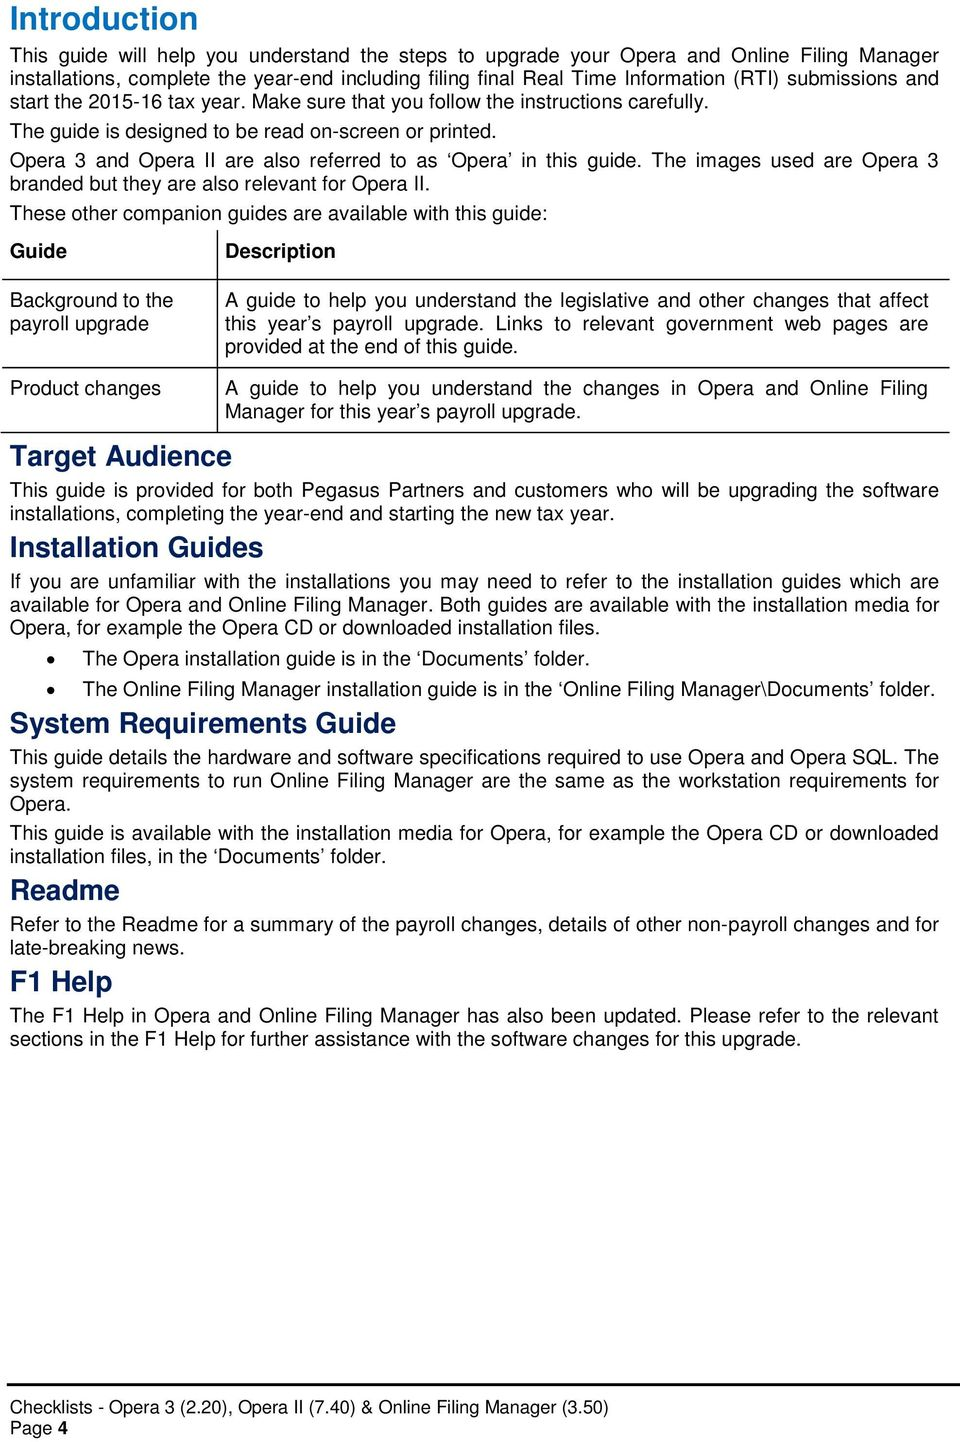 Opera 3 and Opera II are also referred to as Opera in this guide. The images used are Opera 3 branded but they are also relevant for Opera II.